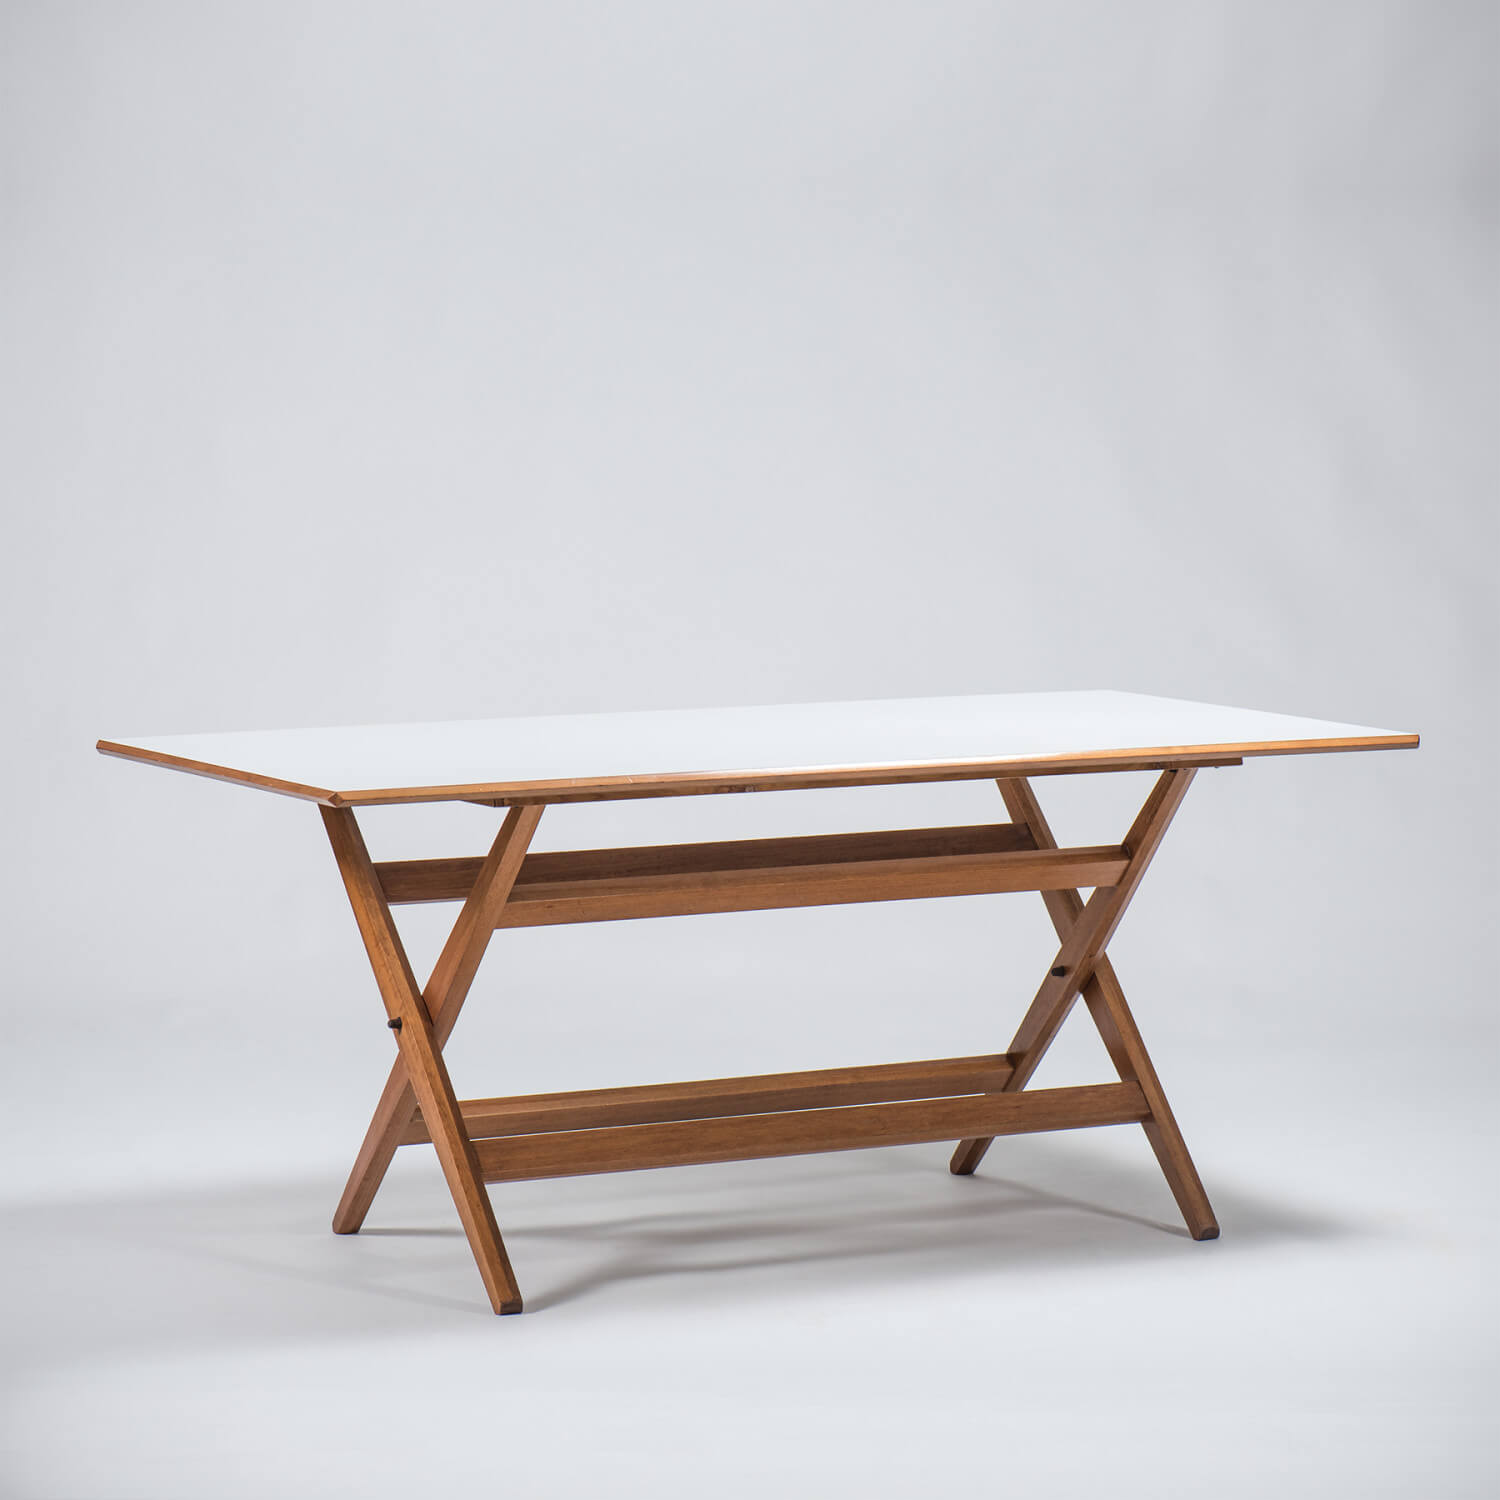 Paolo Tilche |                                  Poney - dining table